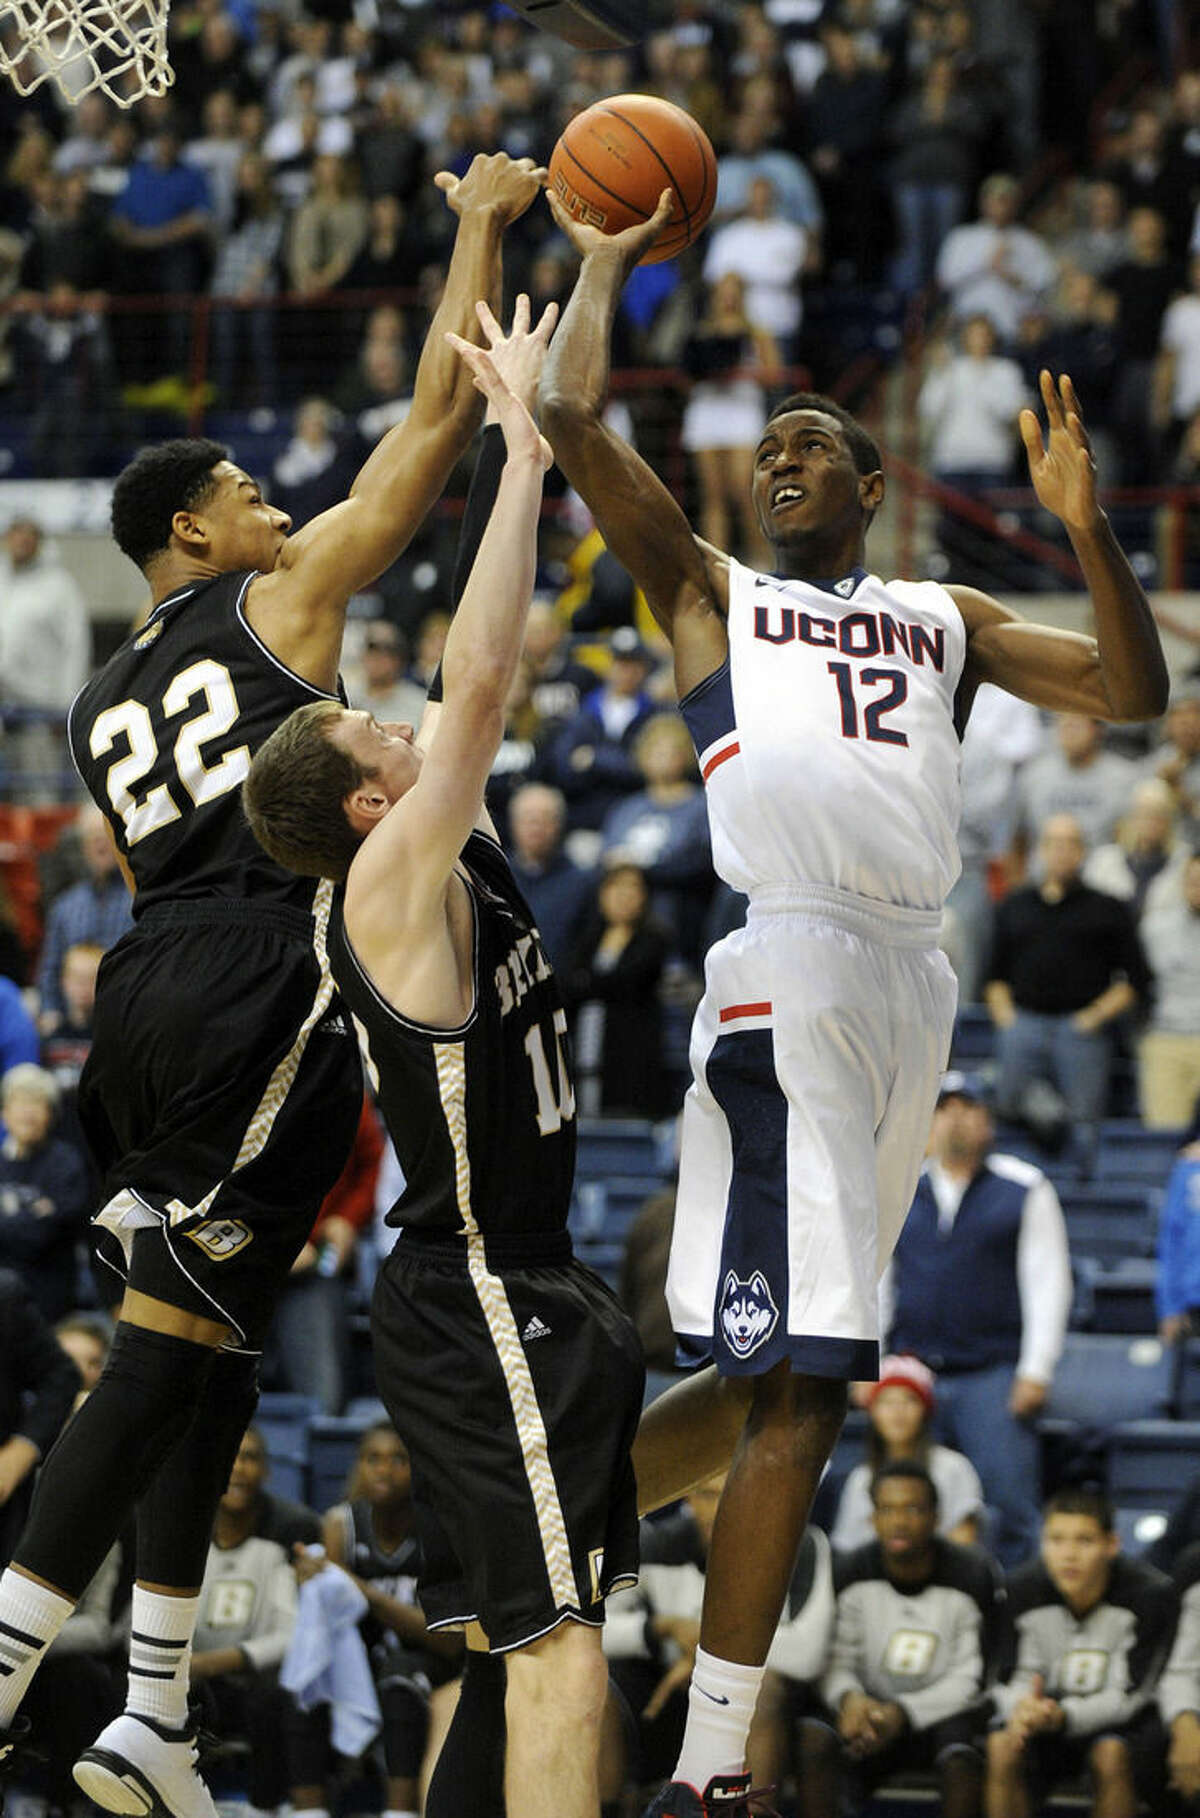 Connecticut's Kentan Facey (12) is guarded by Bryant's Dan Garvin (22) and Joe O'Shea (10) during the first half of an NCAA college basketball game in Storrs, Conn., on Friday, Nov. 14, 2014. (AP Photo/Fred Beckham)